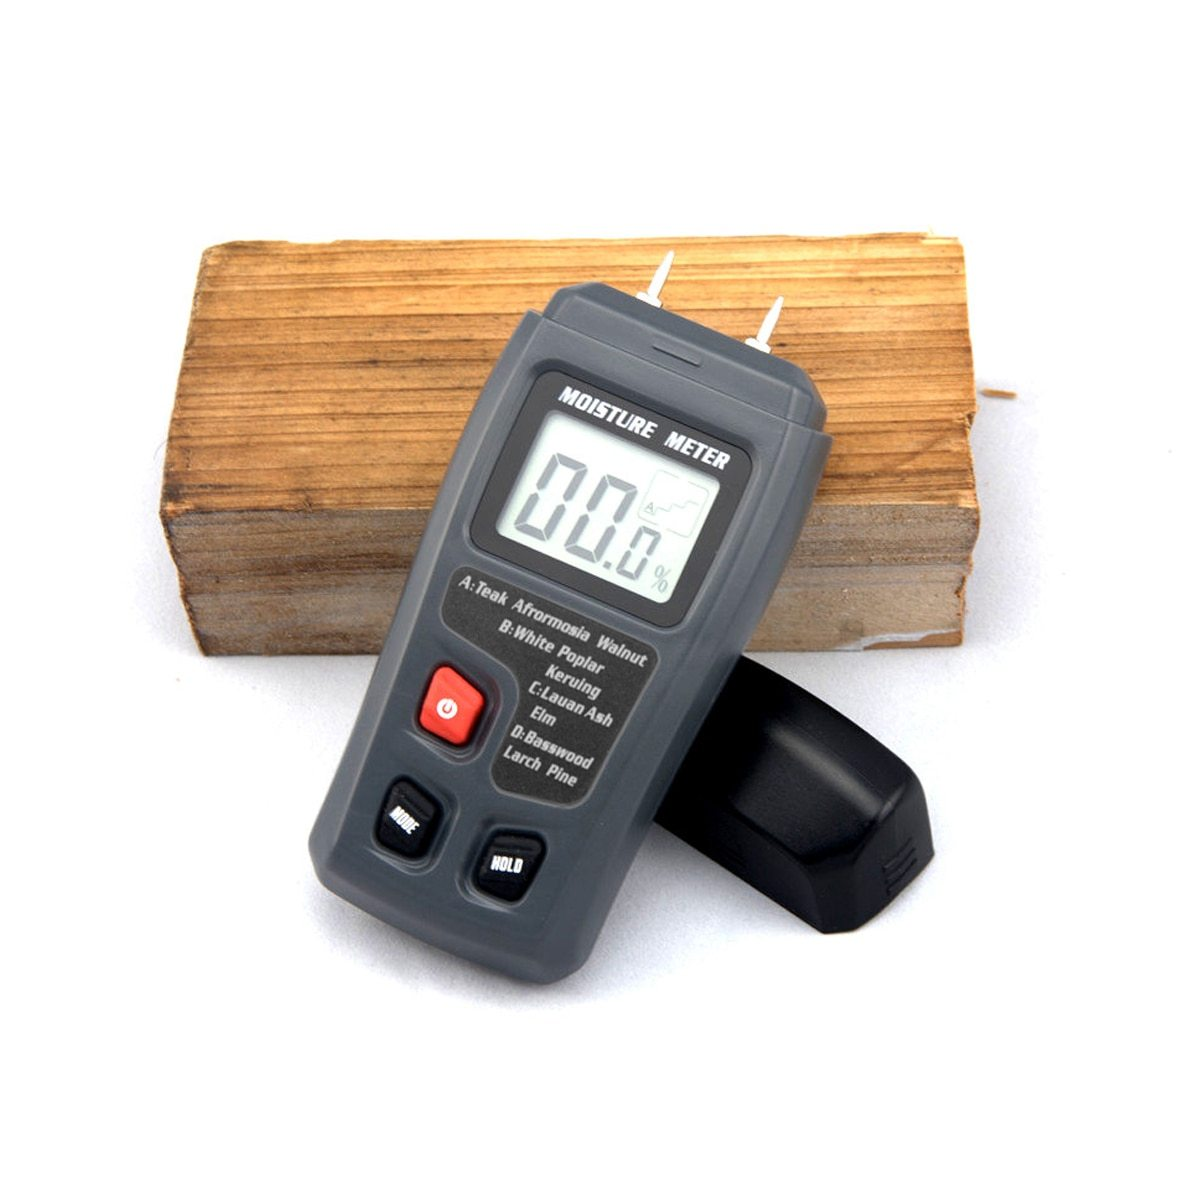 Wood Moisture Meter Detector For Drywall - Shopptique